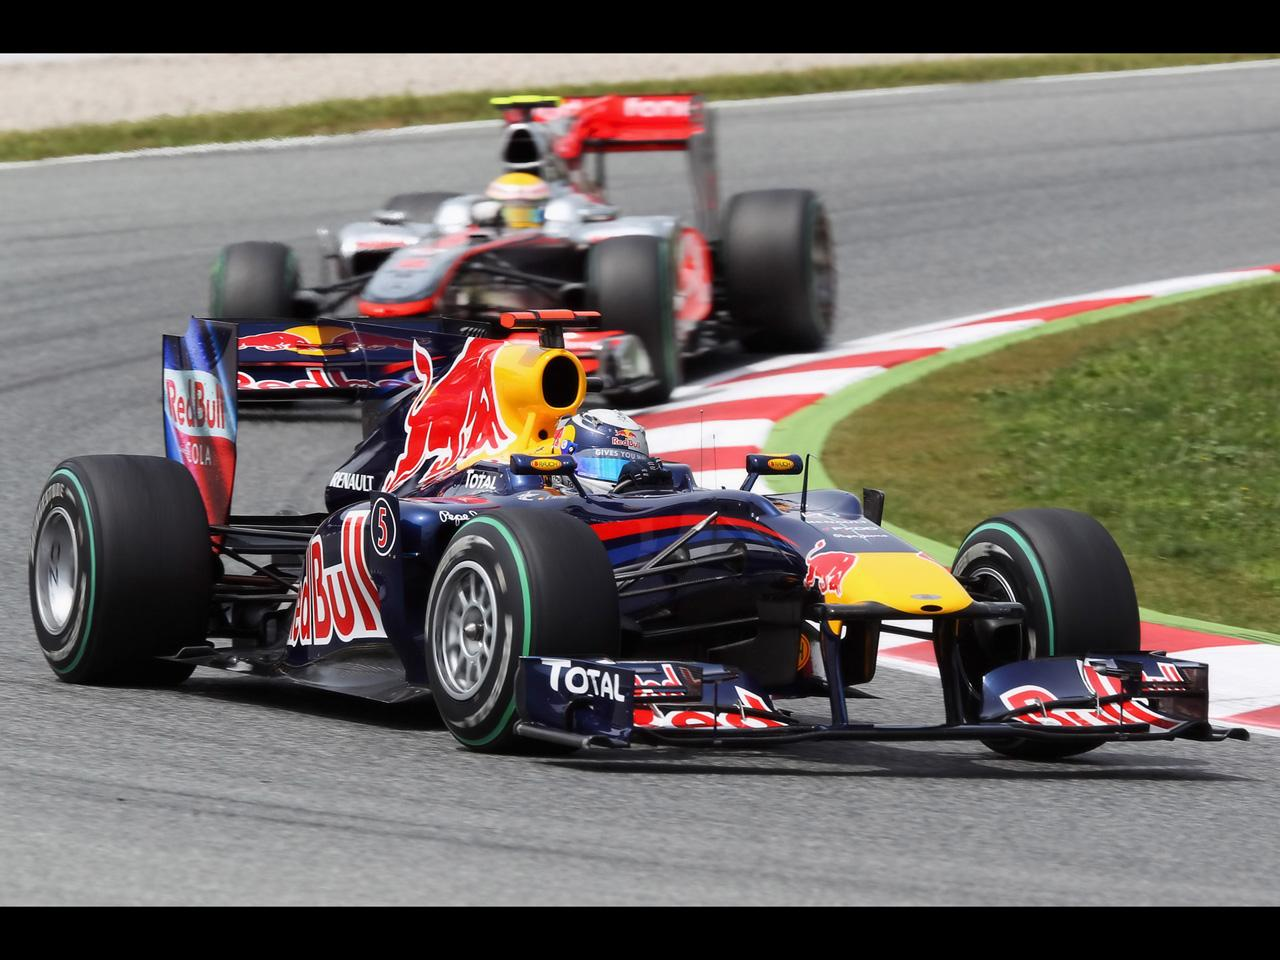 2010 red bull rb6 f1 wallpapers cartestimony. Black Bedroom Furniture Sets. Home Design Ideas